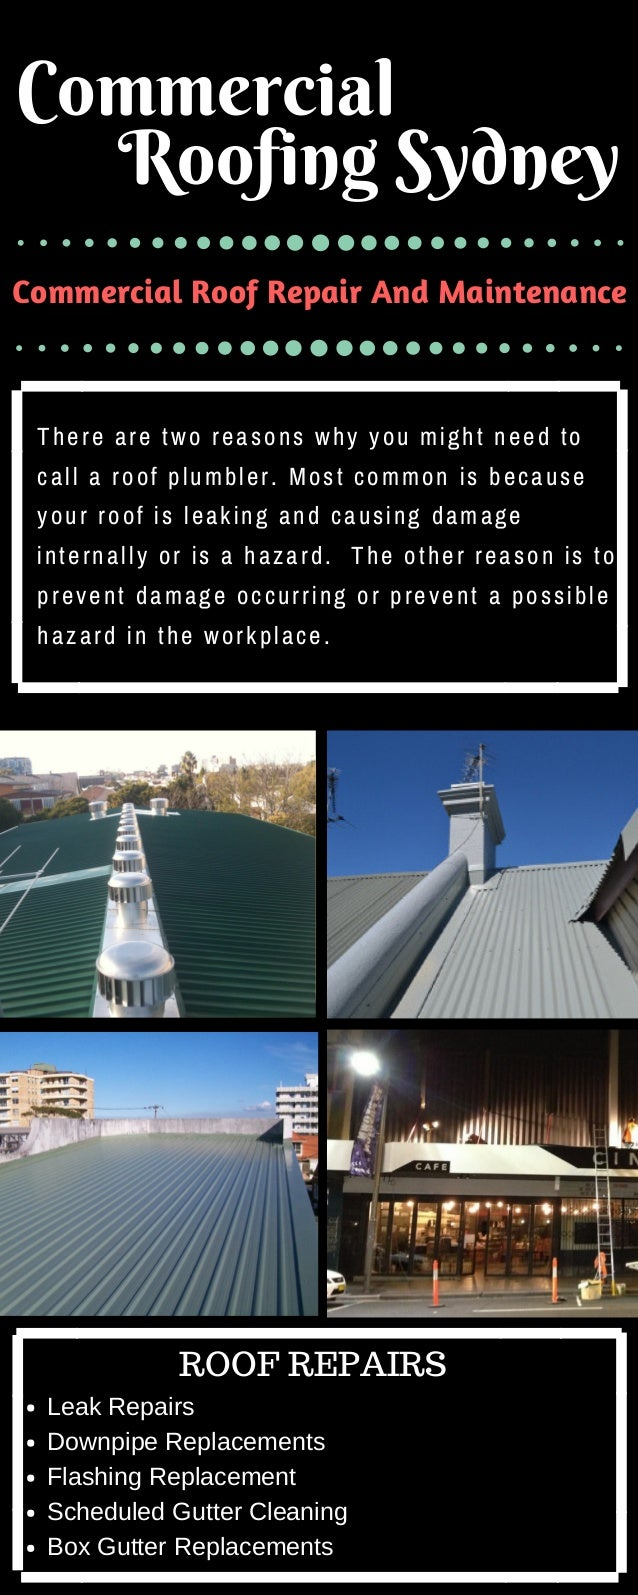 Commercial Industrial Roof Replacements Across Sydney